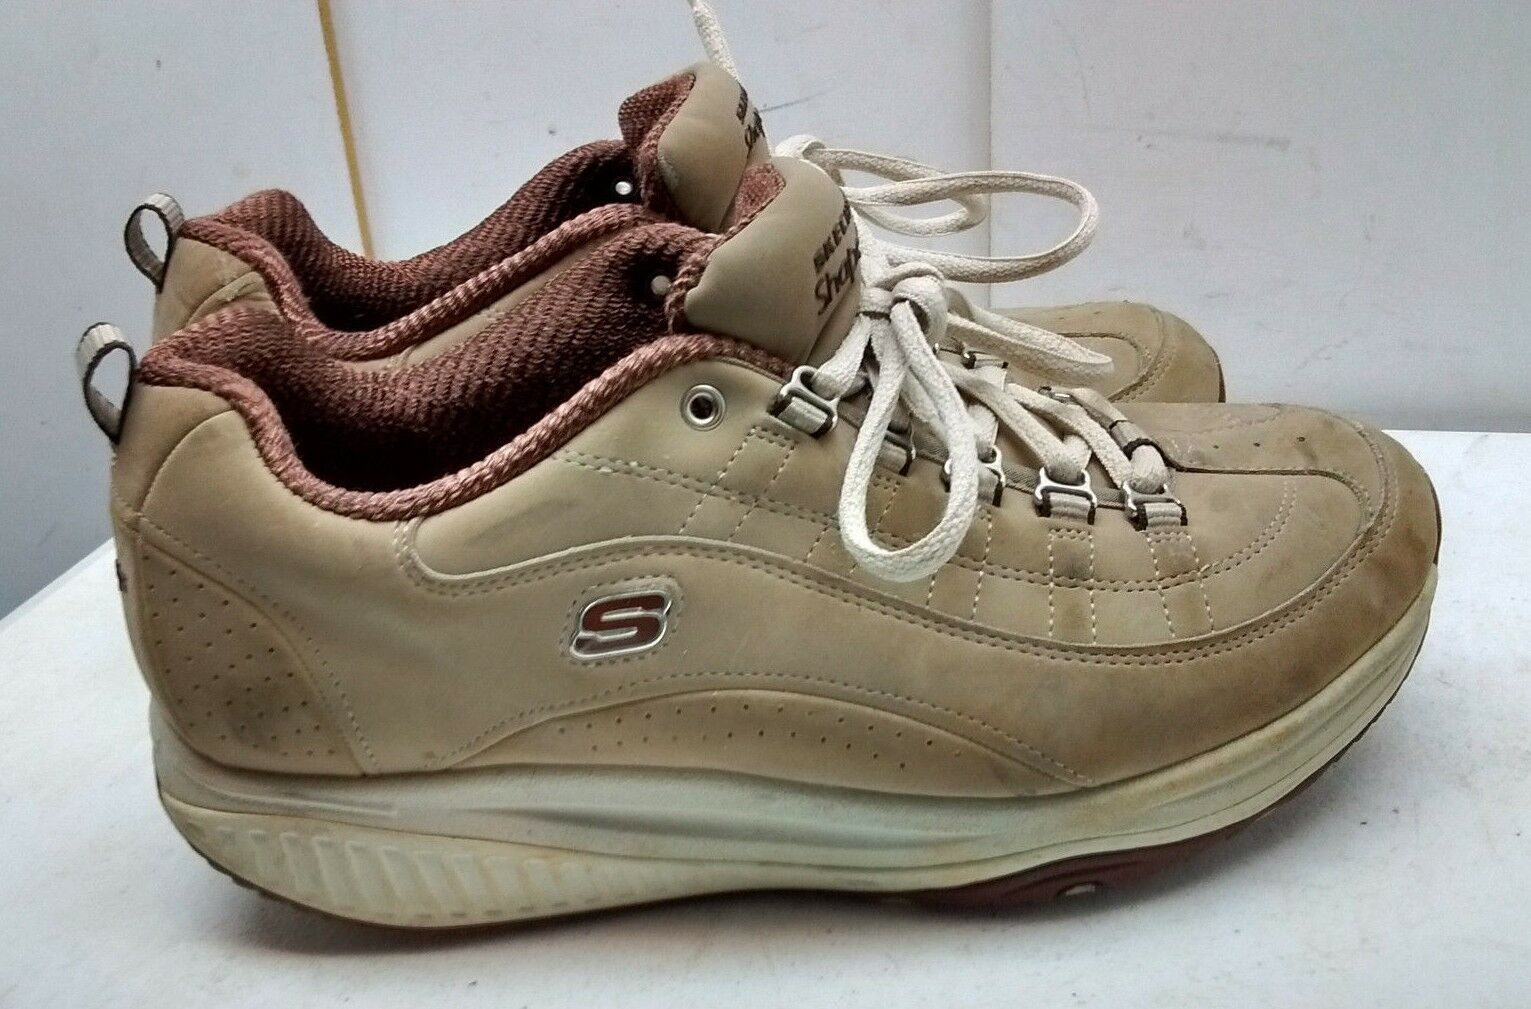 Skechers Shape Ups Women Leather Brown Athletic Fitness Toning Walking shoes 8.5M